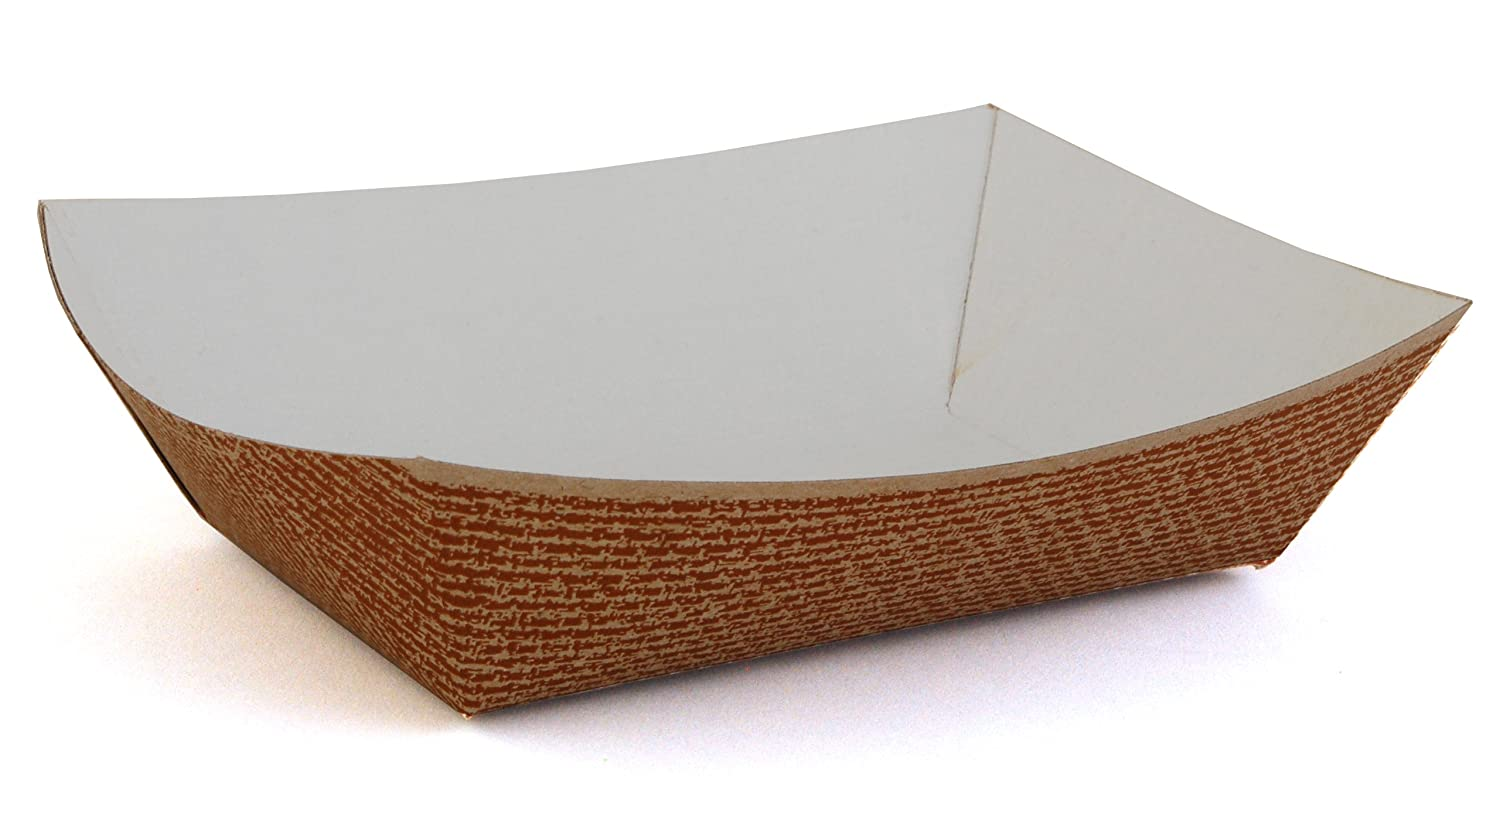 Southern Champion Tray 0564 #200 Hearthstone Clay Coated Paperboard Food Tray / Boat / Bowl, 2 lb. Capacity (Case of 1000)